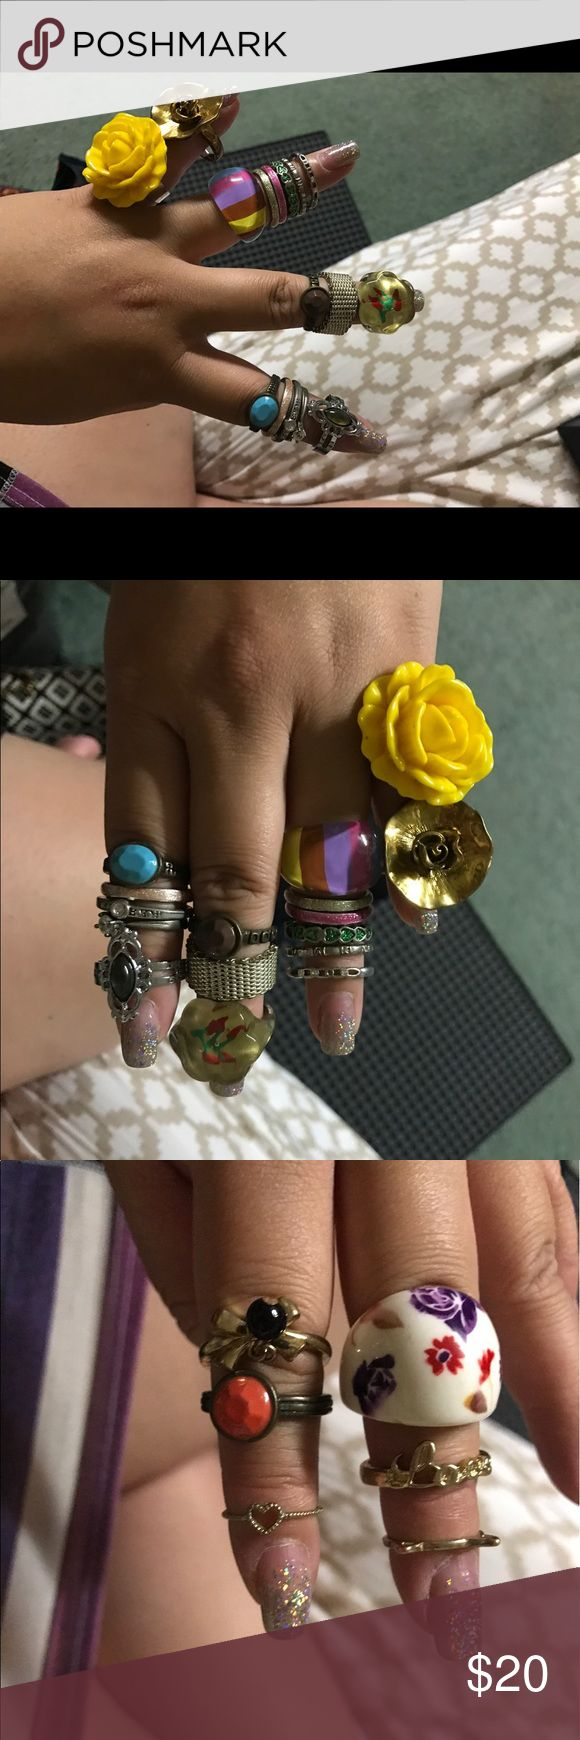 Rings size 7/8 Lots of used rings! Tons of them are size 7/8. I have 2 midi rings in there. They all sort of rusted a little ESP now that I don't even wear them anymore. Just trying to sell these asap to clear up space so price negotiable. Last one is a 4 way style ring! Jewelry Rings